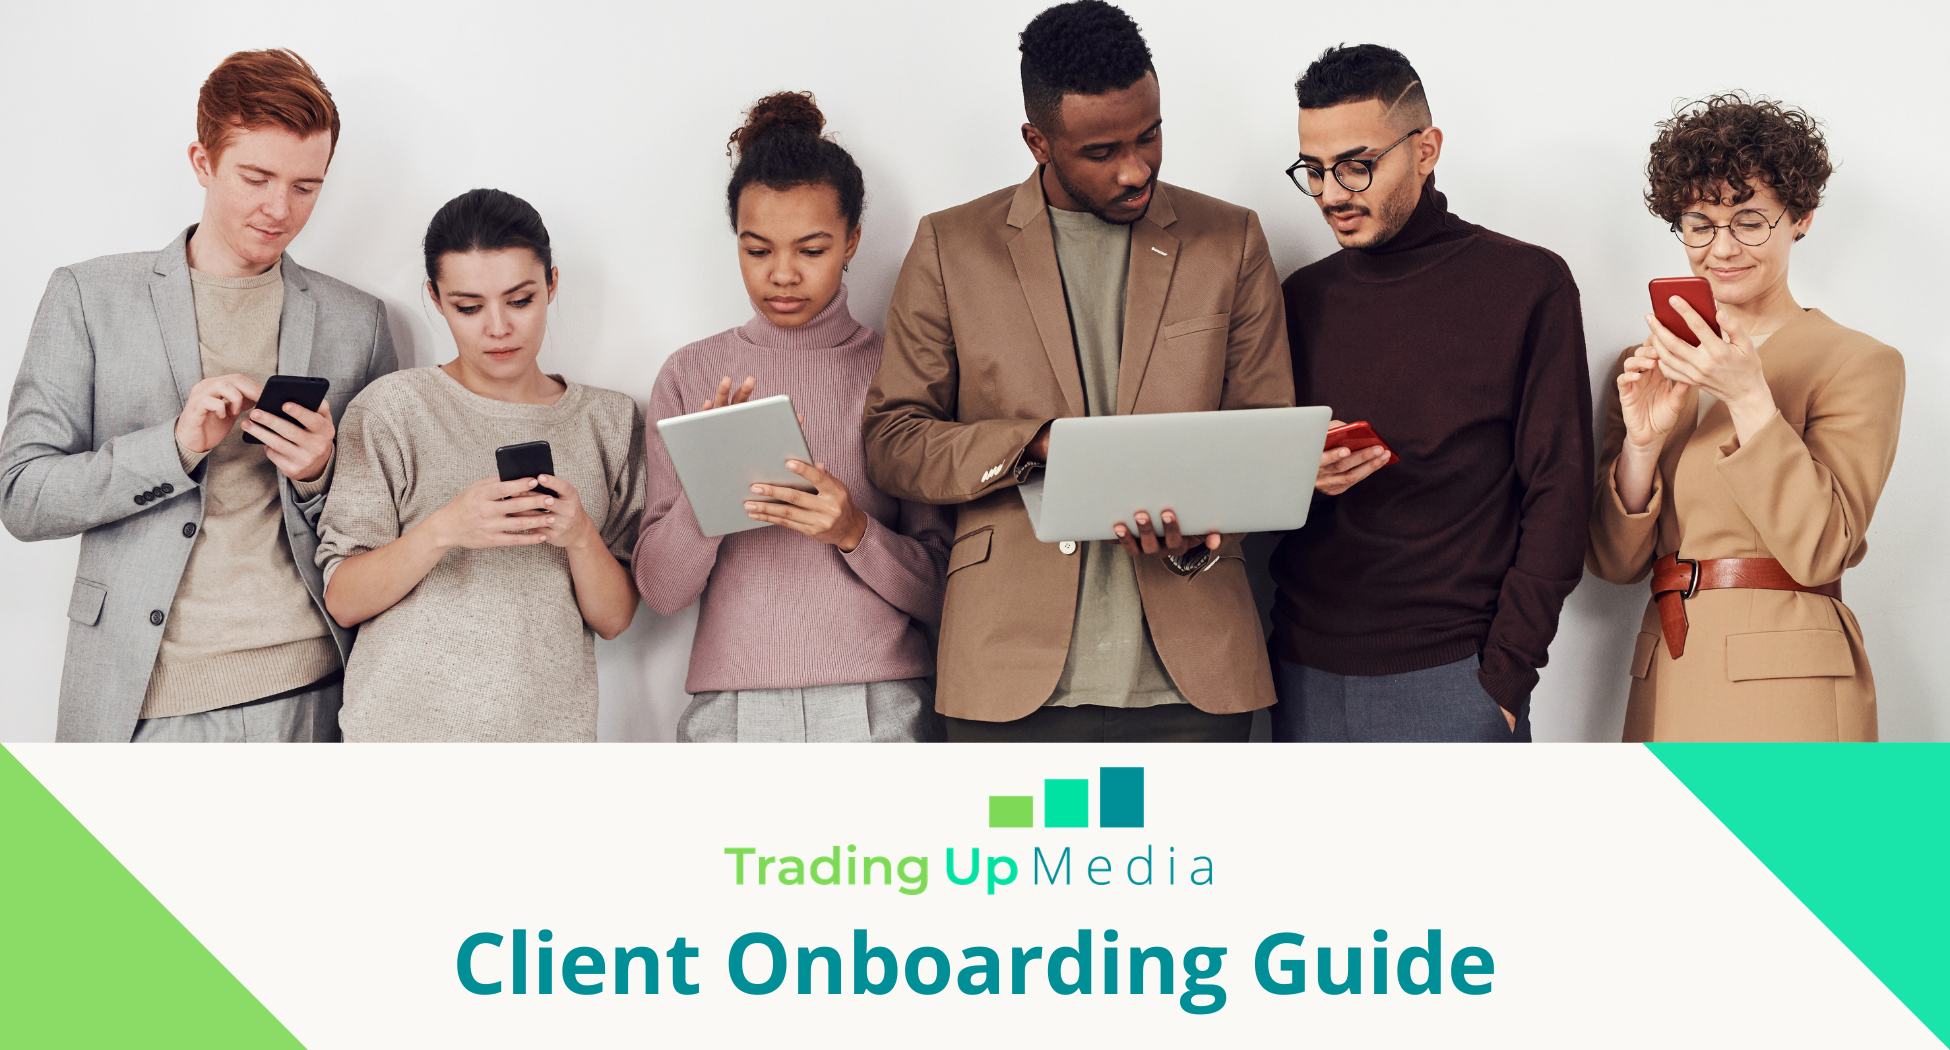 Our Client Onboarding Guide